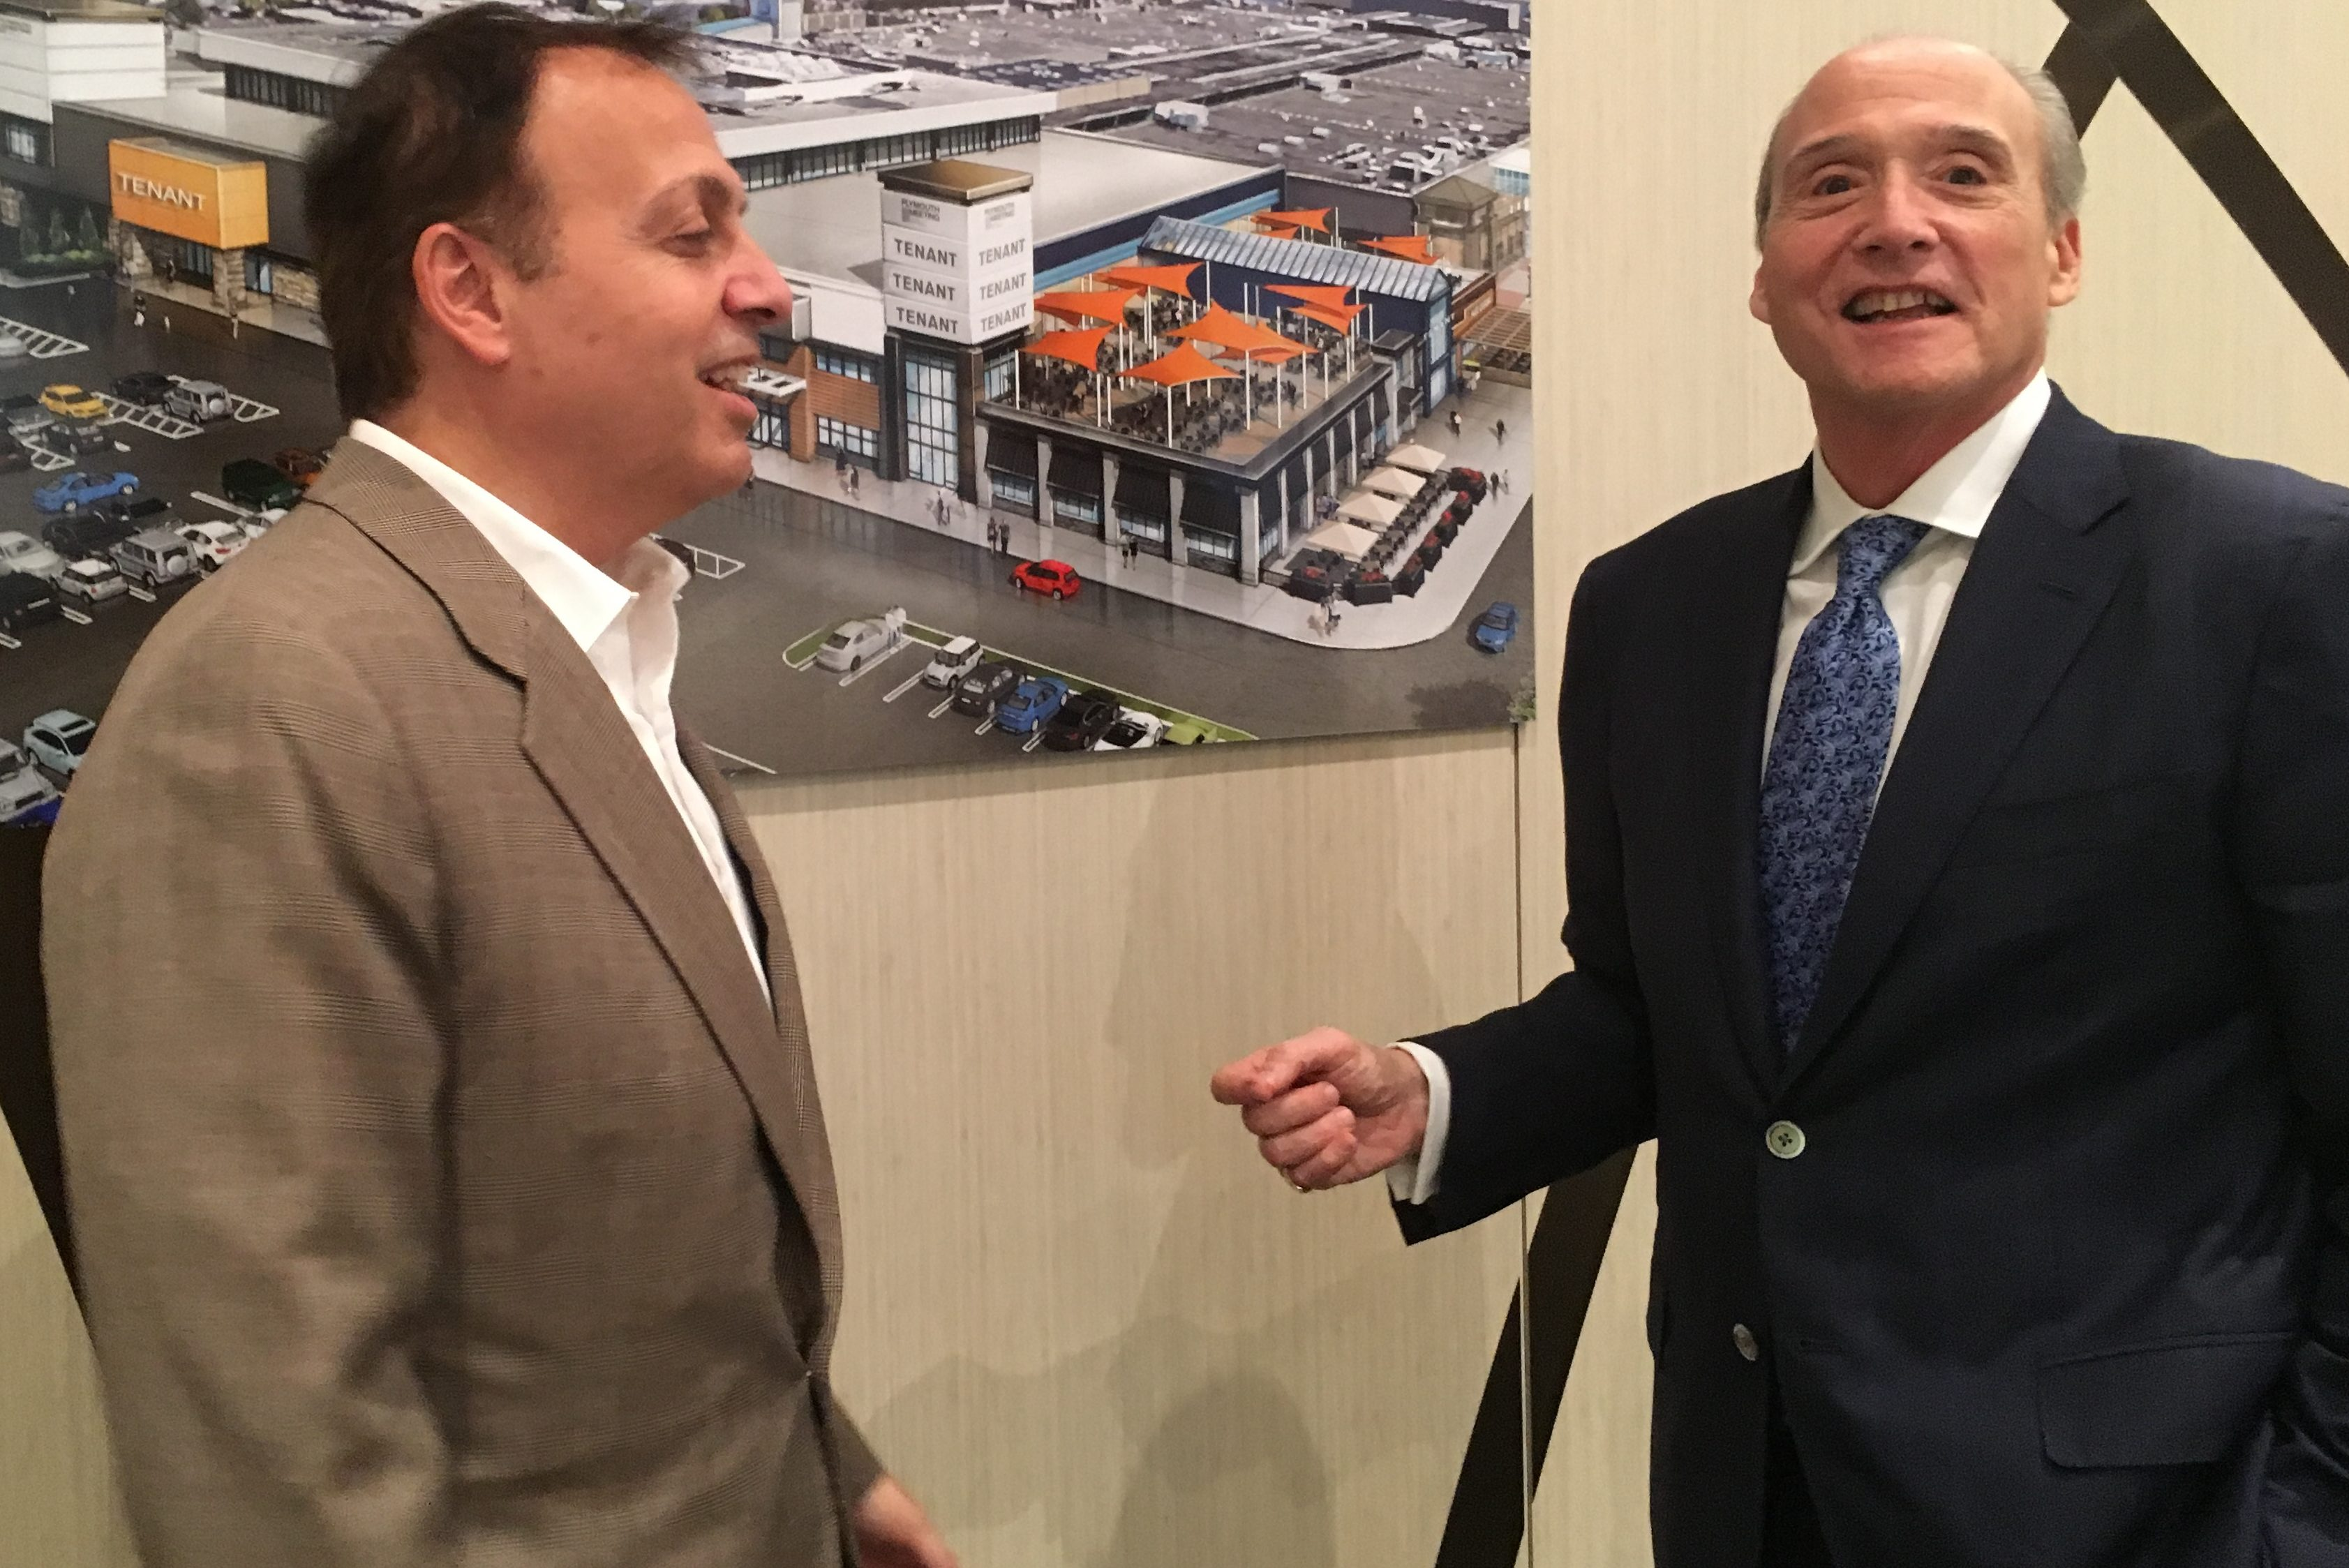 PREIT CEO Joe Coradino (right) stands with architect Frankie J. Campione who works on many PREIT malls, at PREIT´s booth at the International Council of Shopping Centers (ICSC) New York Dealmaking Conference this week.